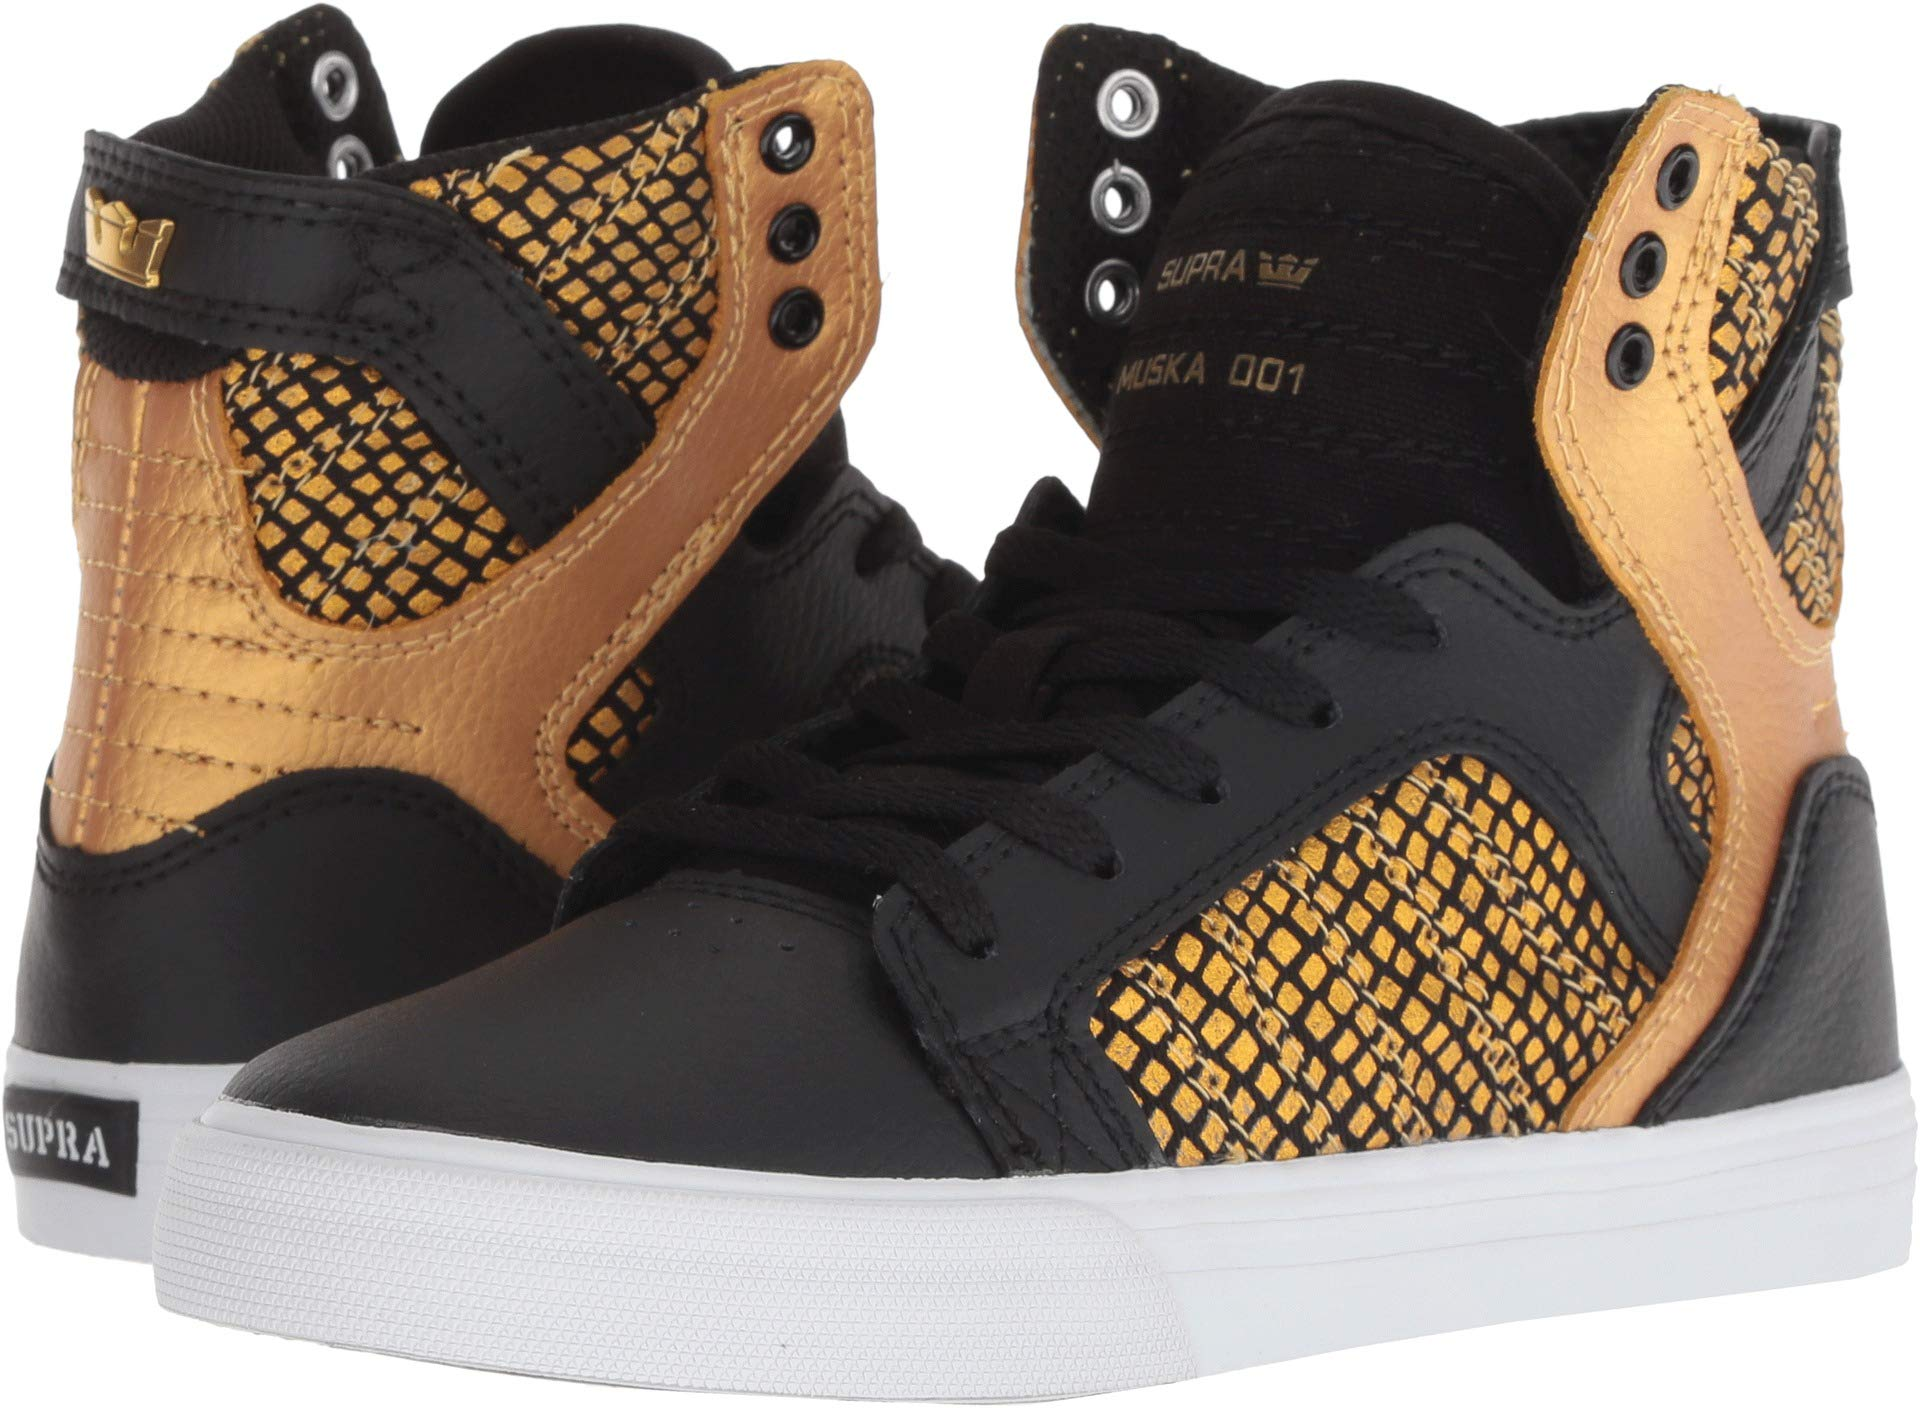 6d6c09d54ea Galleon - Supra Kids Boy's Skytop (Little Kid/Big Kid) Black/Gold/Black/ White 3 M US Little Kid